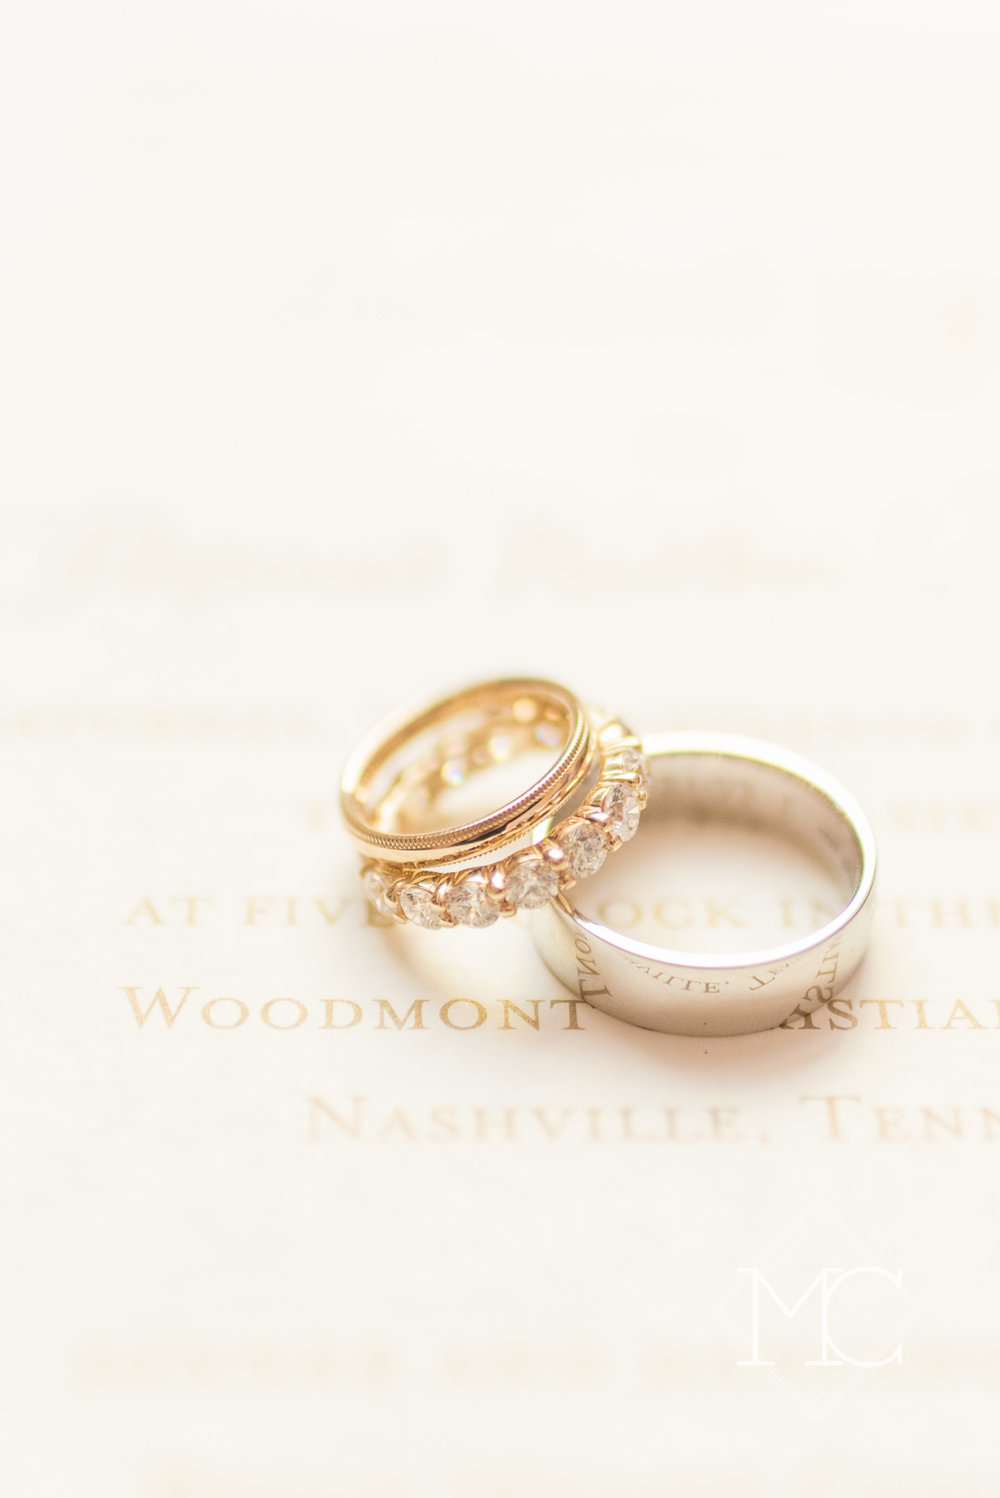 image from a nashville belle meade wedding in tennessee